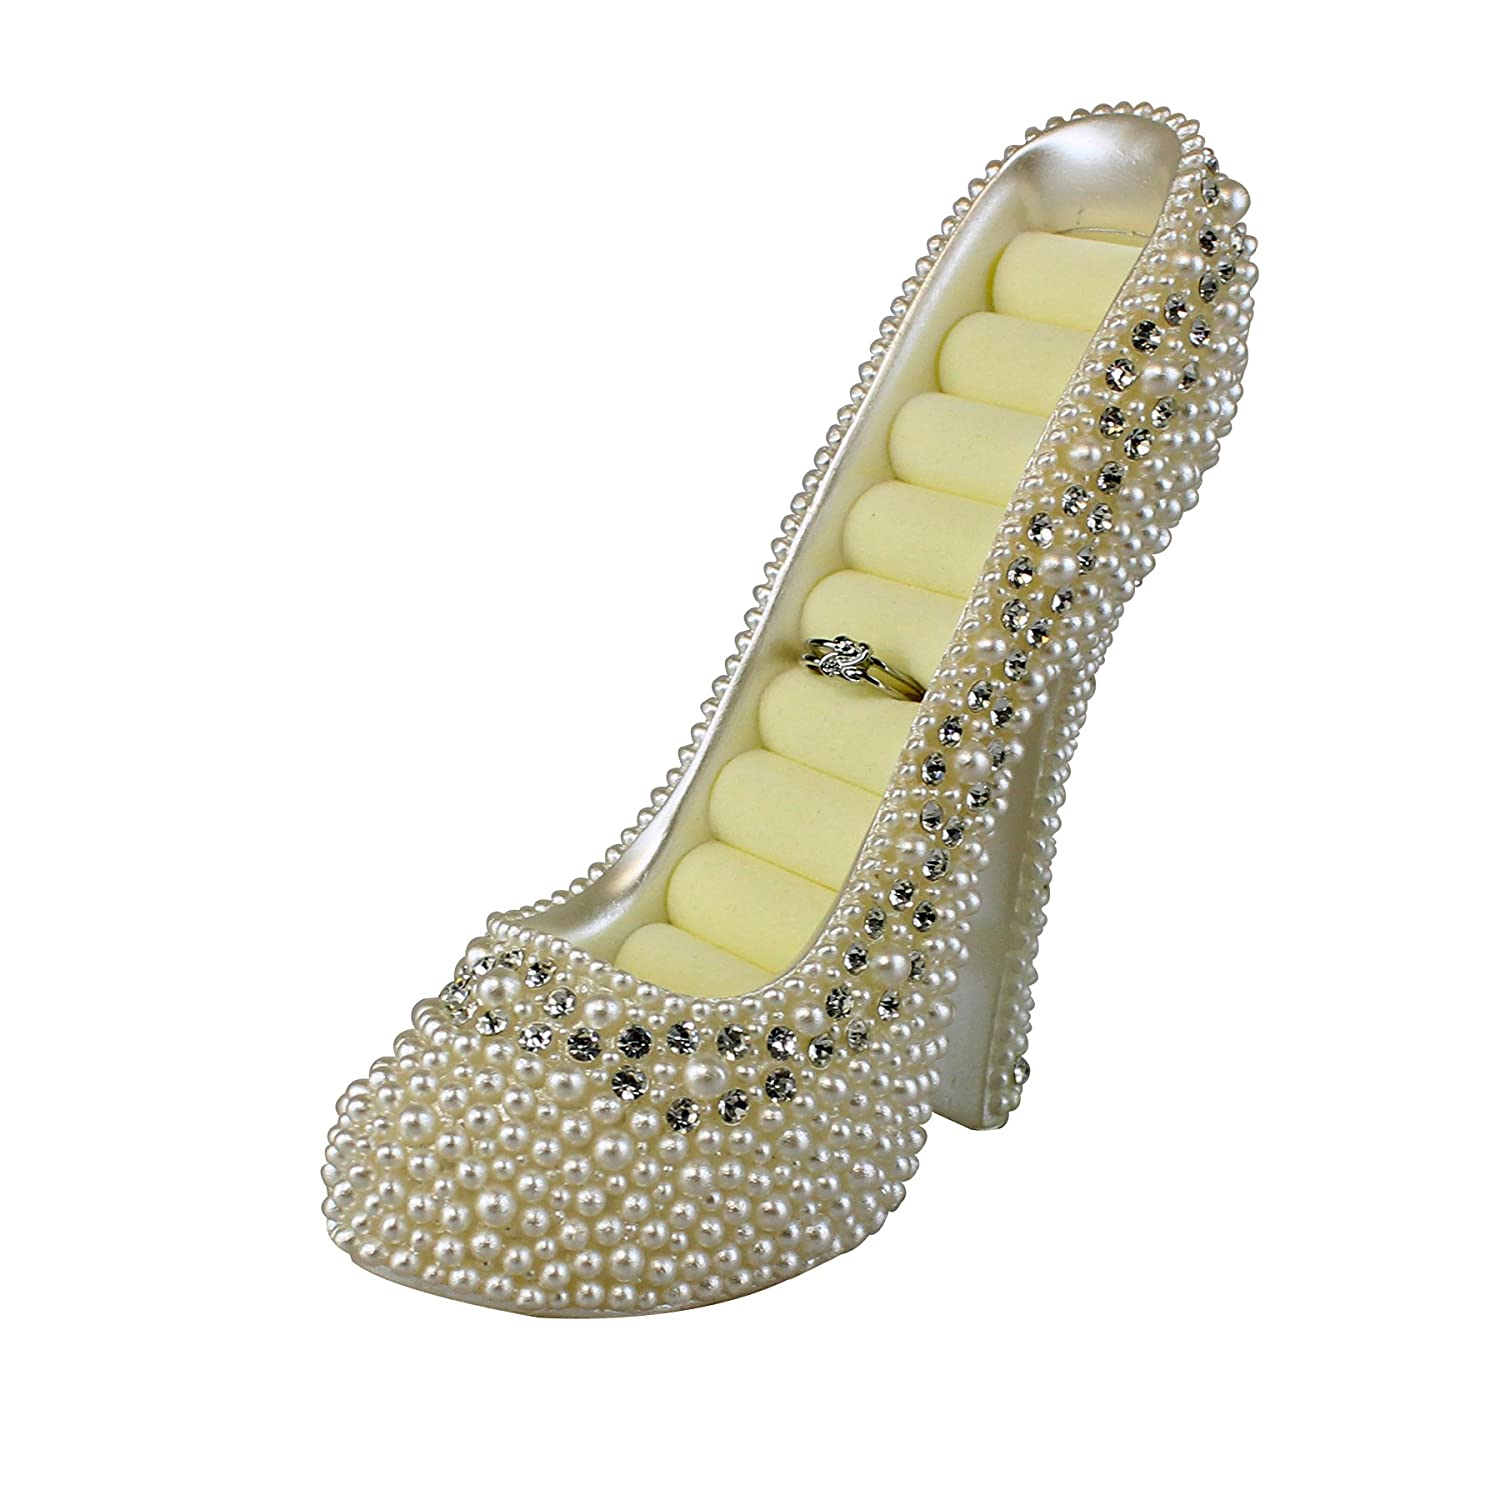 e25a2055fefd Jewelry Towers JewelryNanny 8-Ring Shoe Lovers Simulated Pearl Crystal High  Heel Ring Holder Shoe White ...